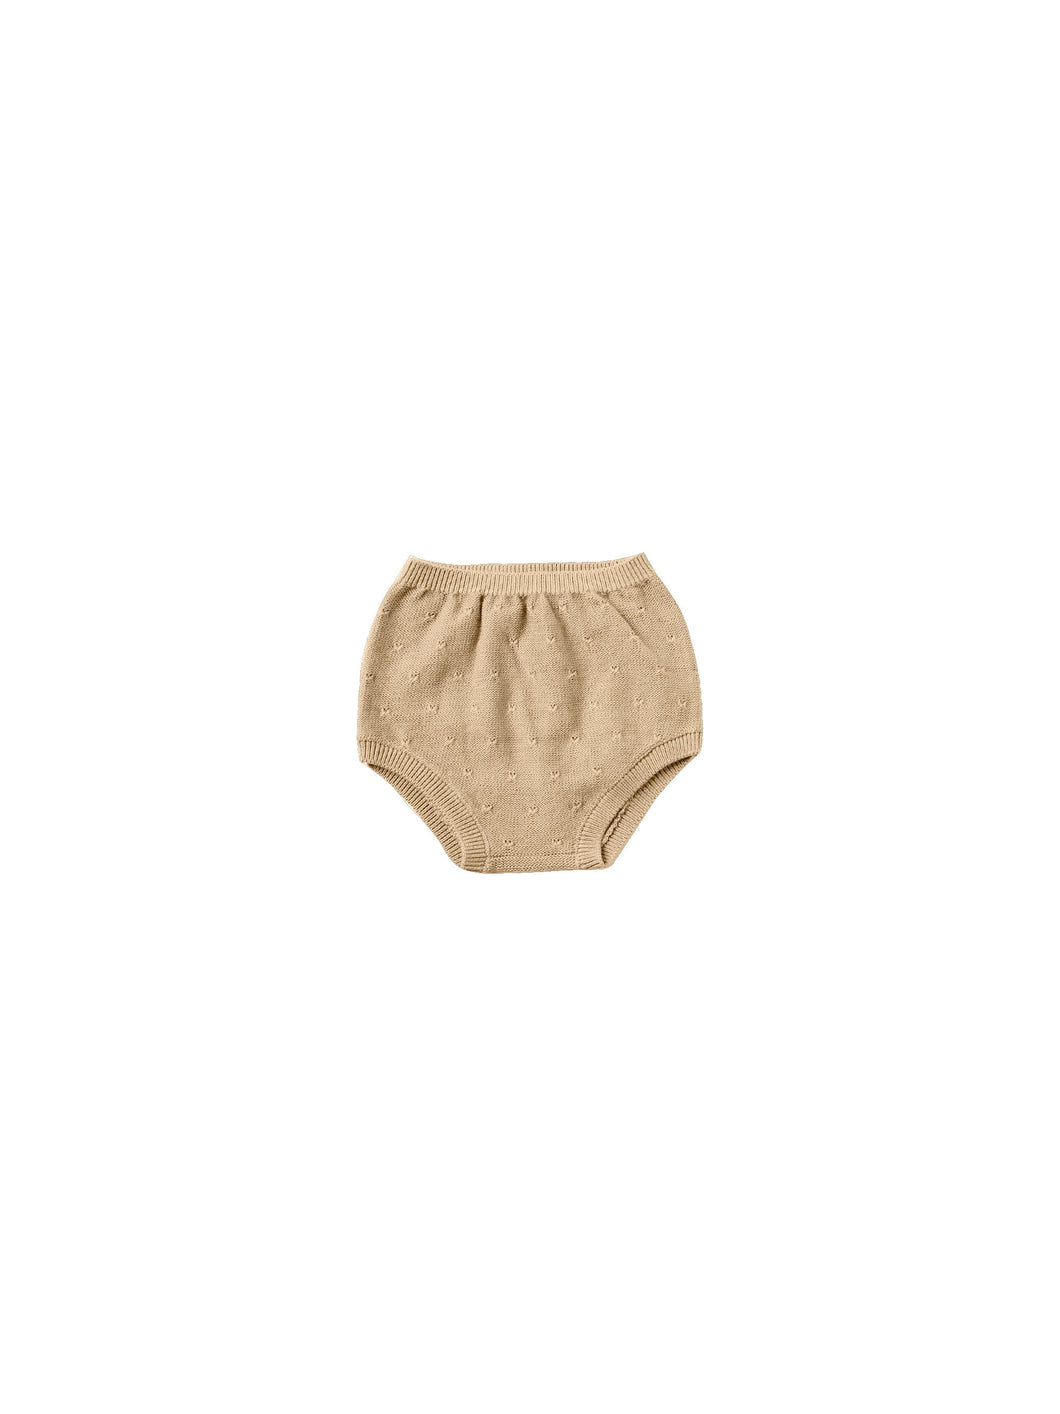 Quincy Mae knit bloomer - honey